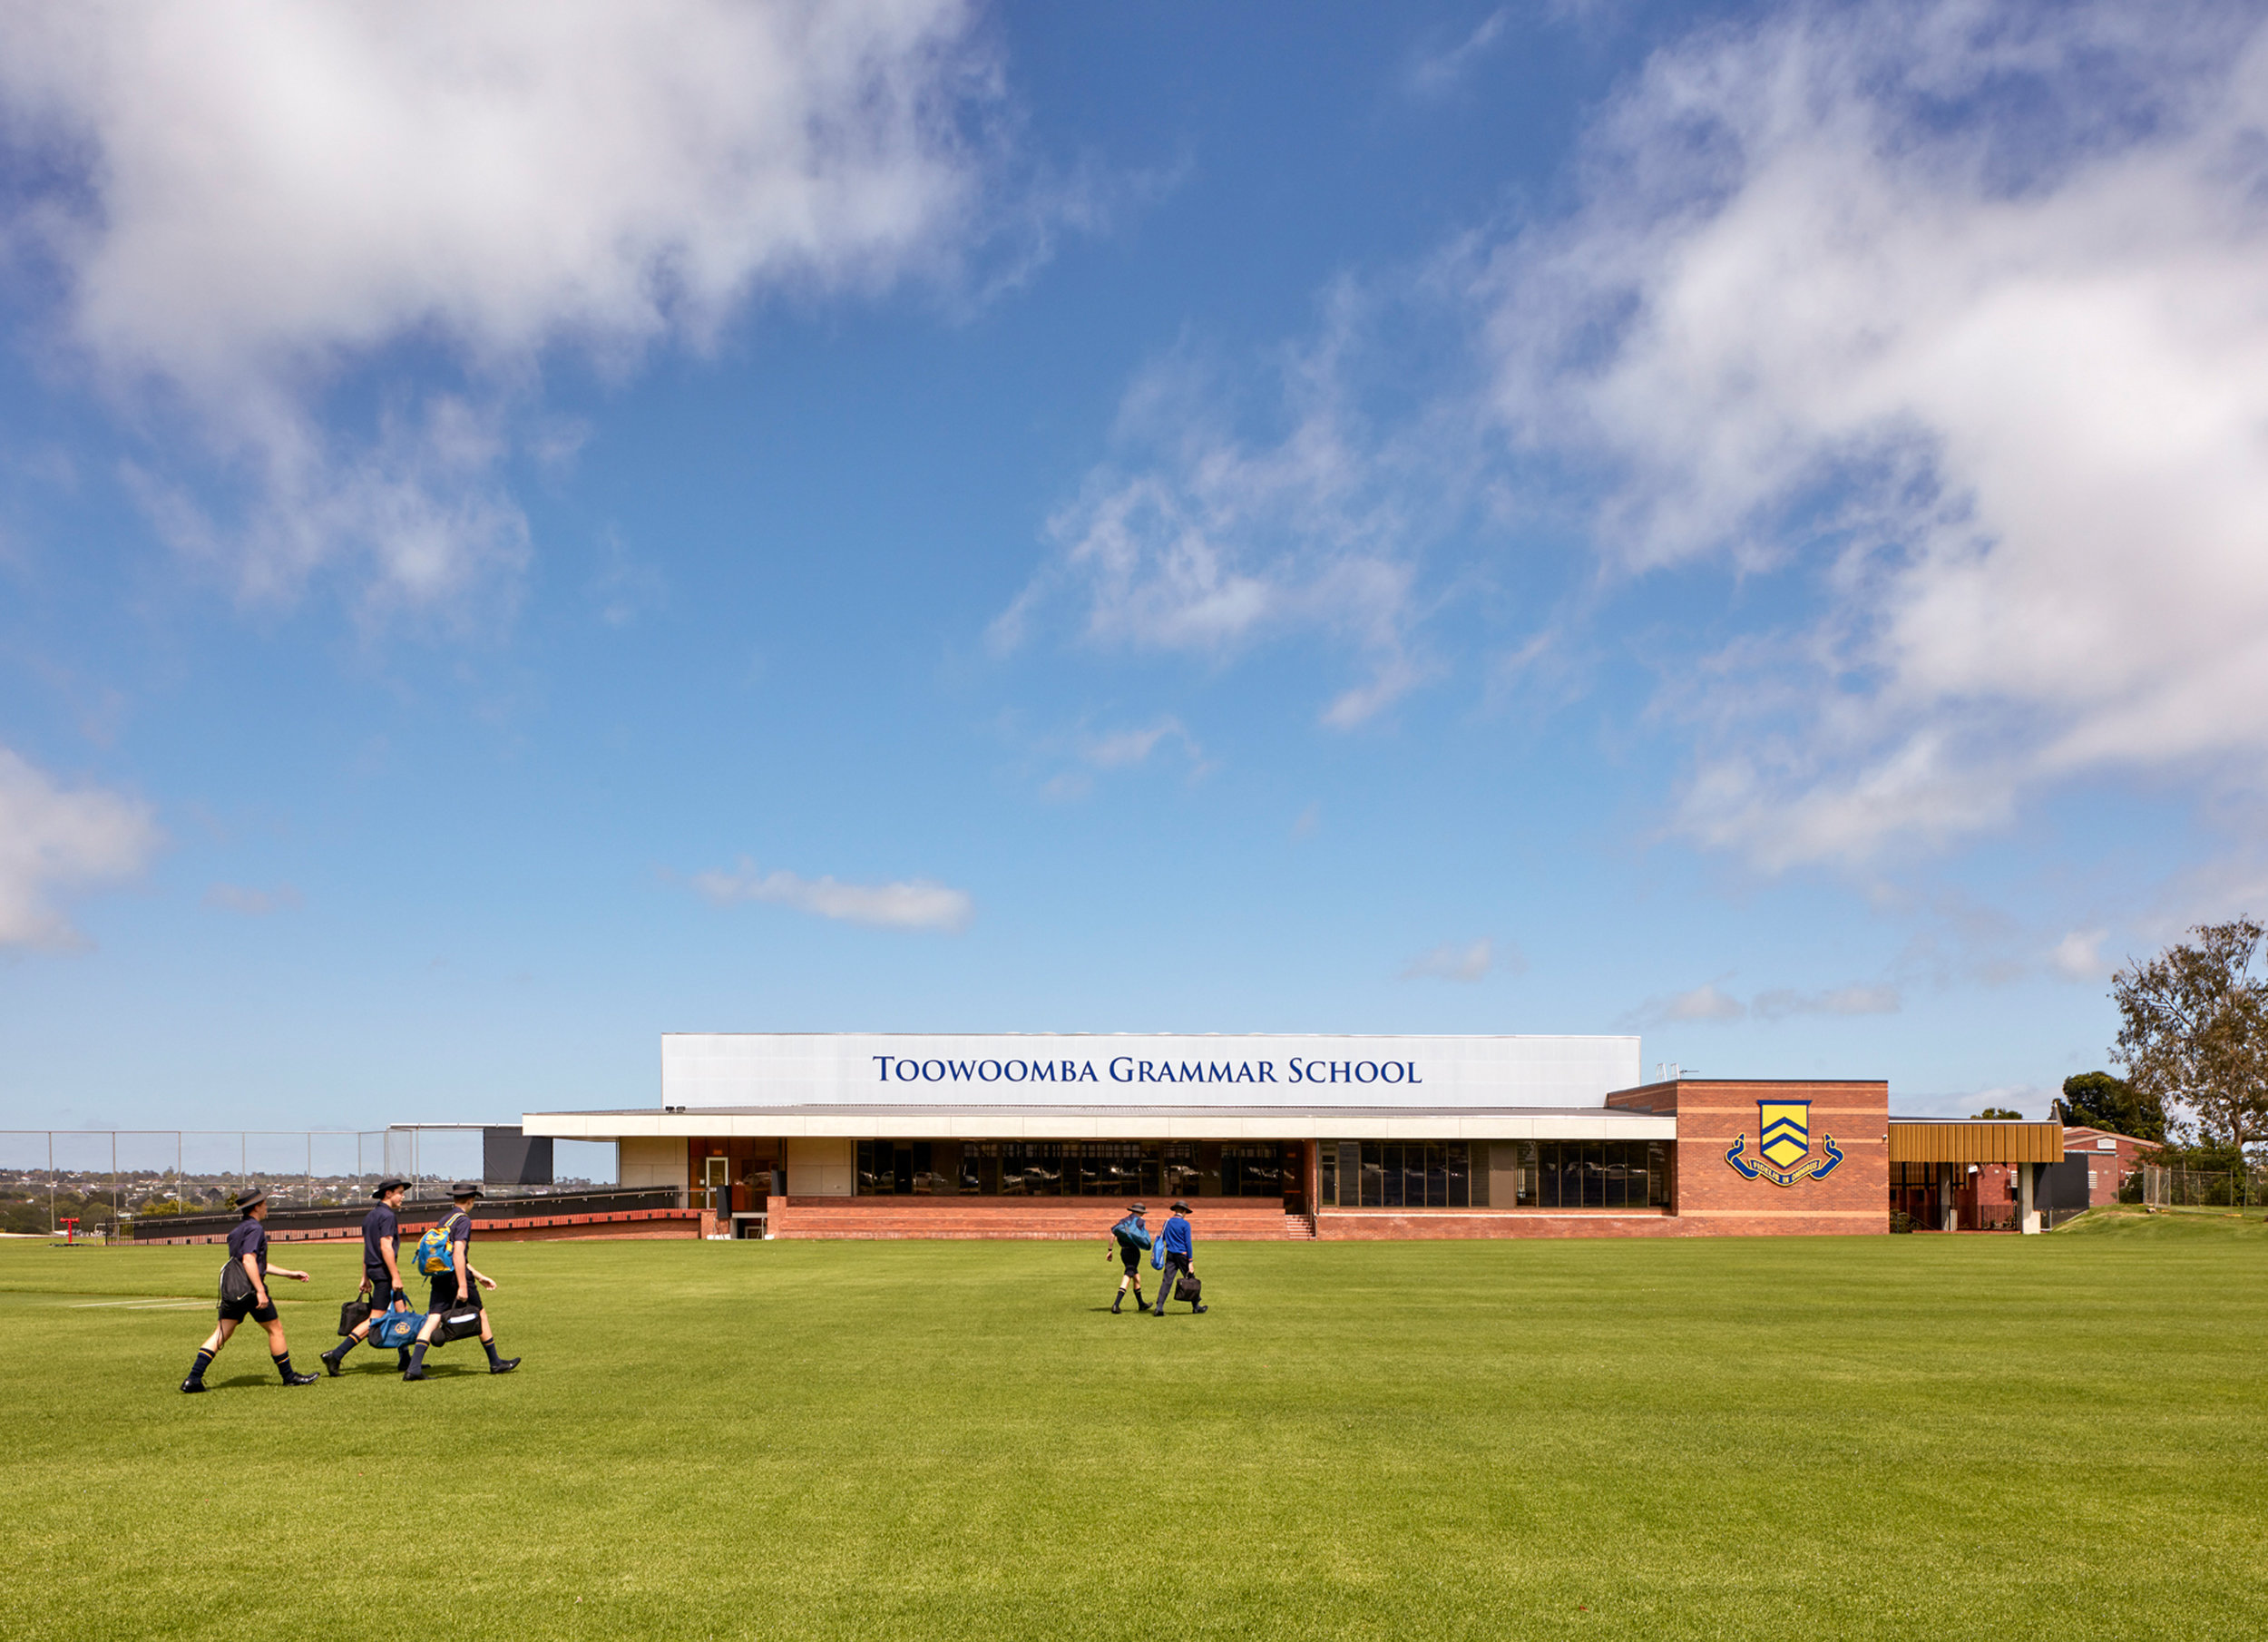 3002-educational_ToowoombaGrammarSchoolGymnasium_WilsonArch_CFJ_01.jpg